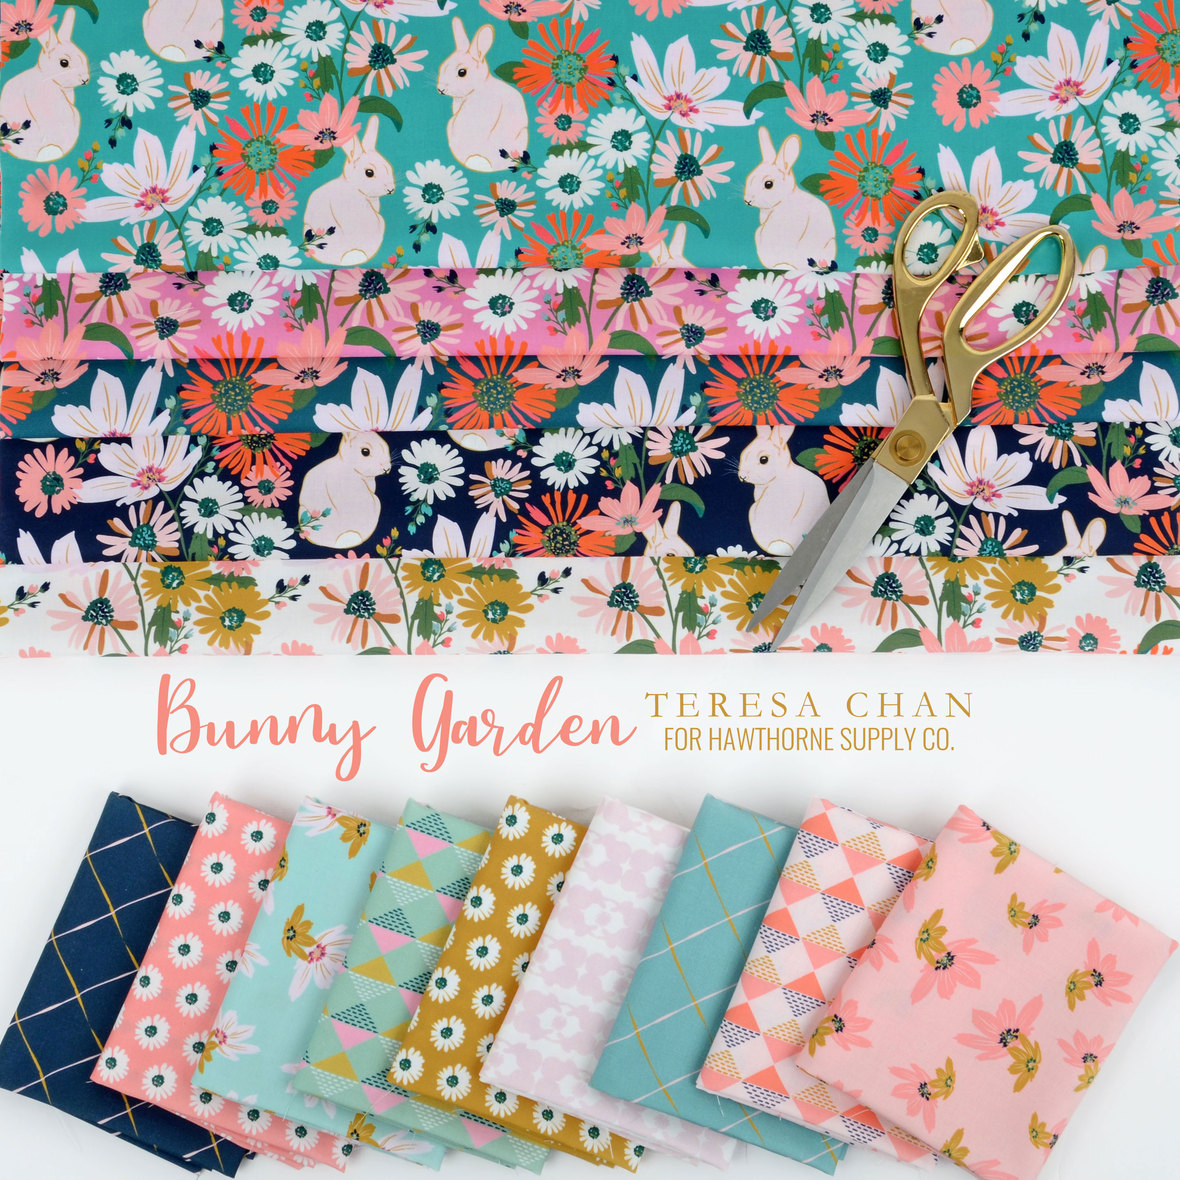 Bunny-Garden-Teresa-Chan-for-Hawthorne-Supply-Co